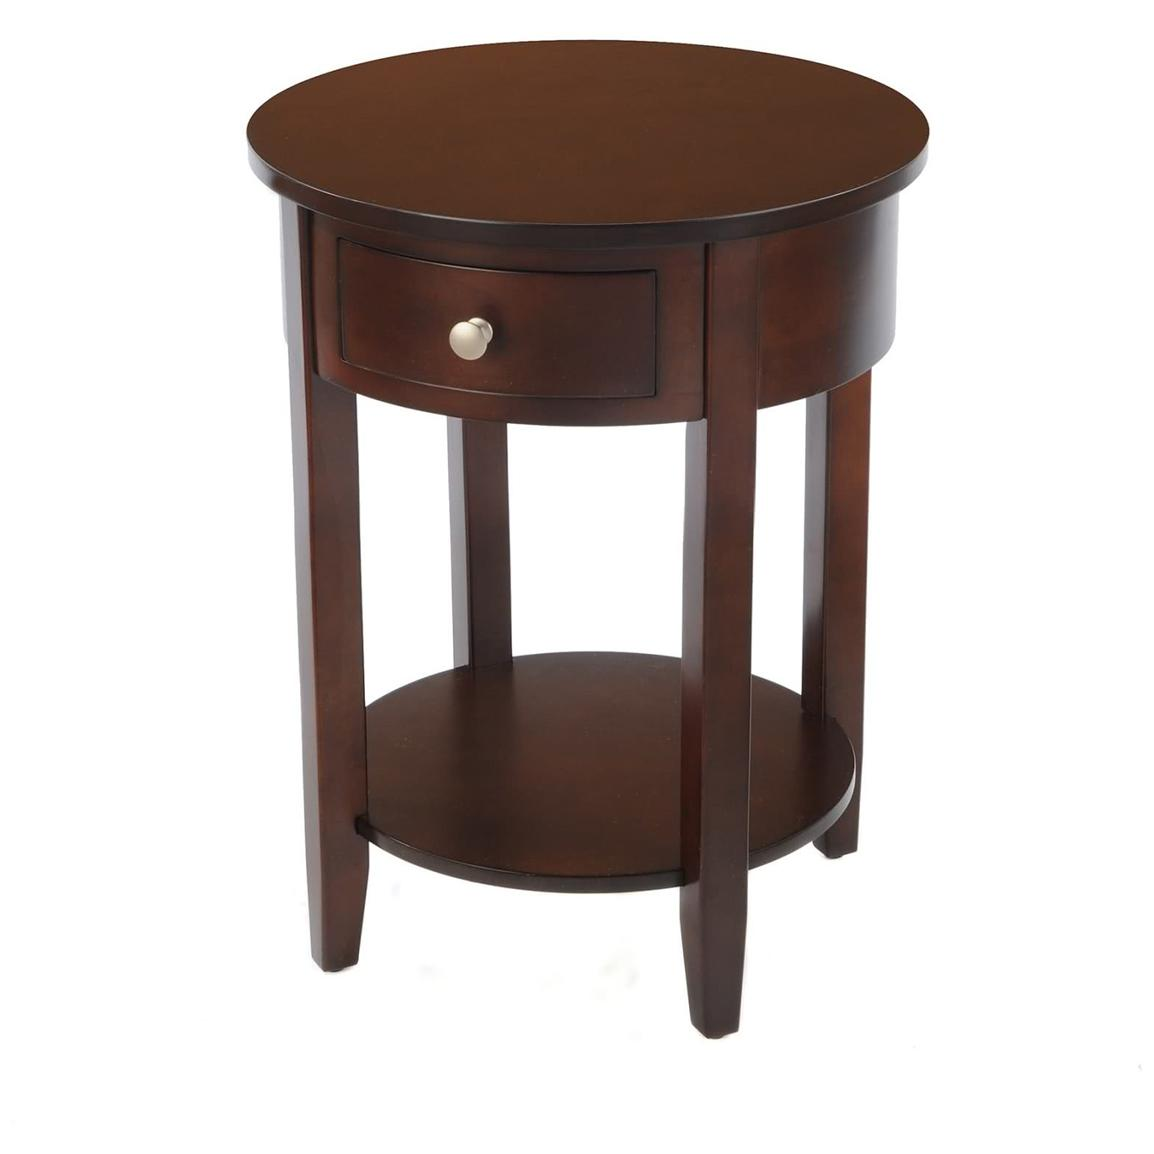 Circular End Tables Round Side Table With Drawer 236468 Living Room